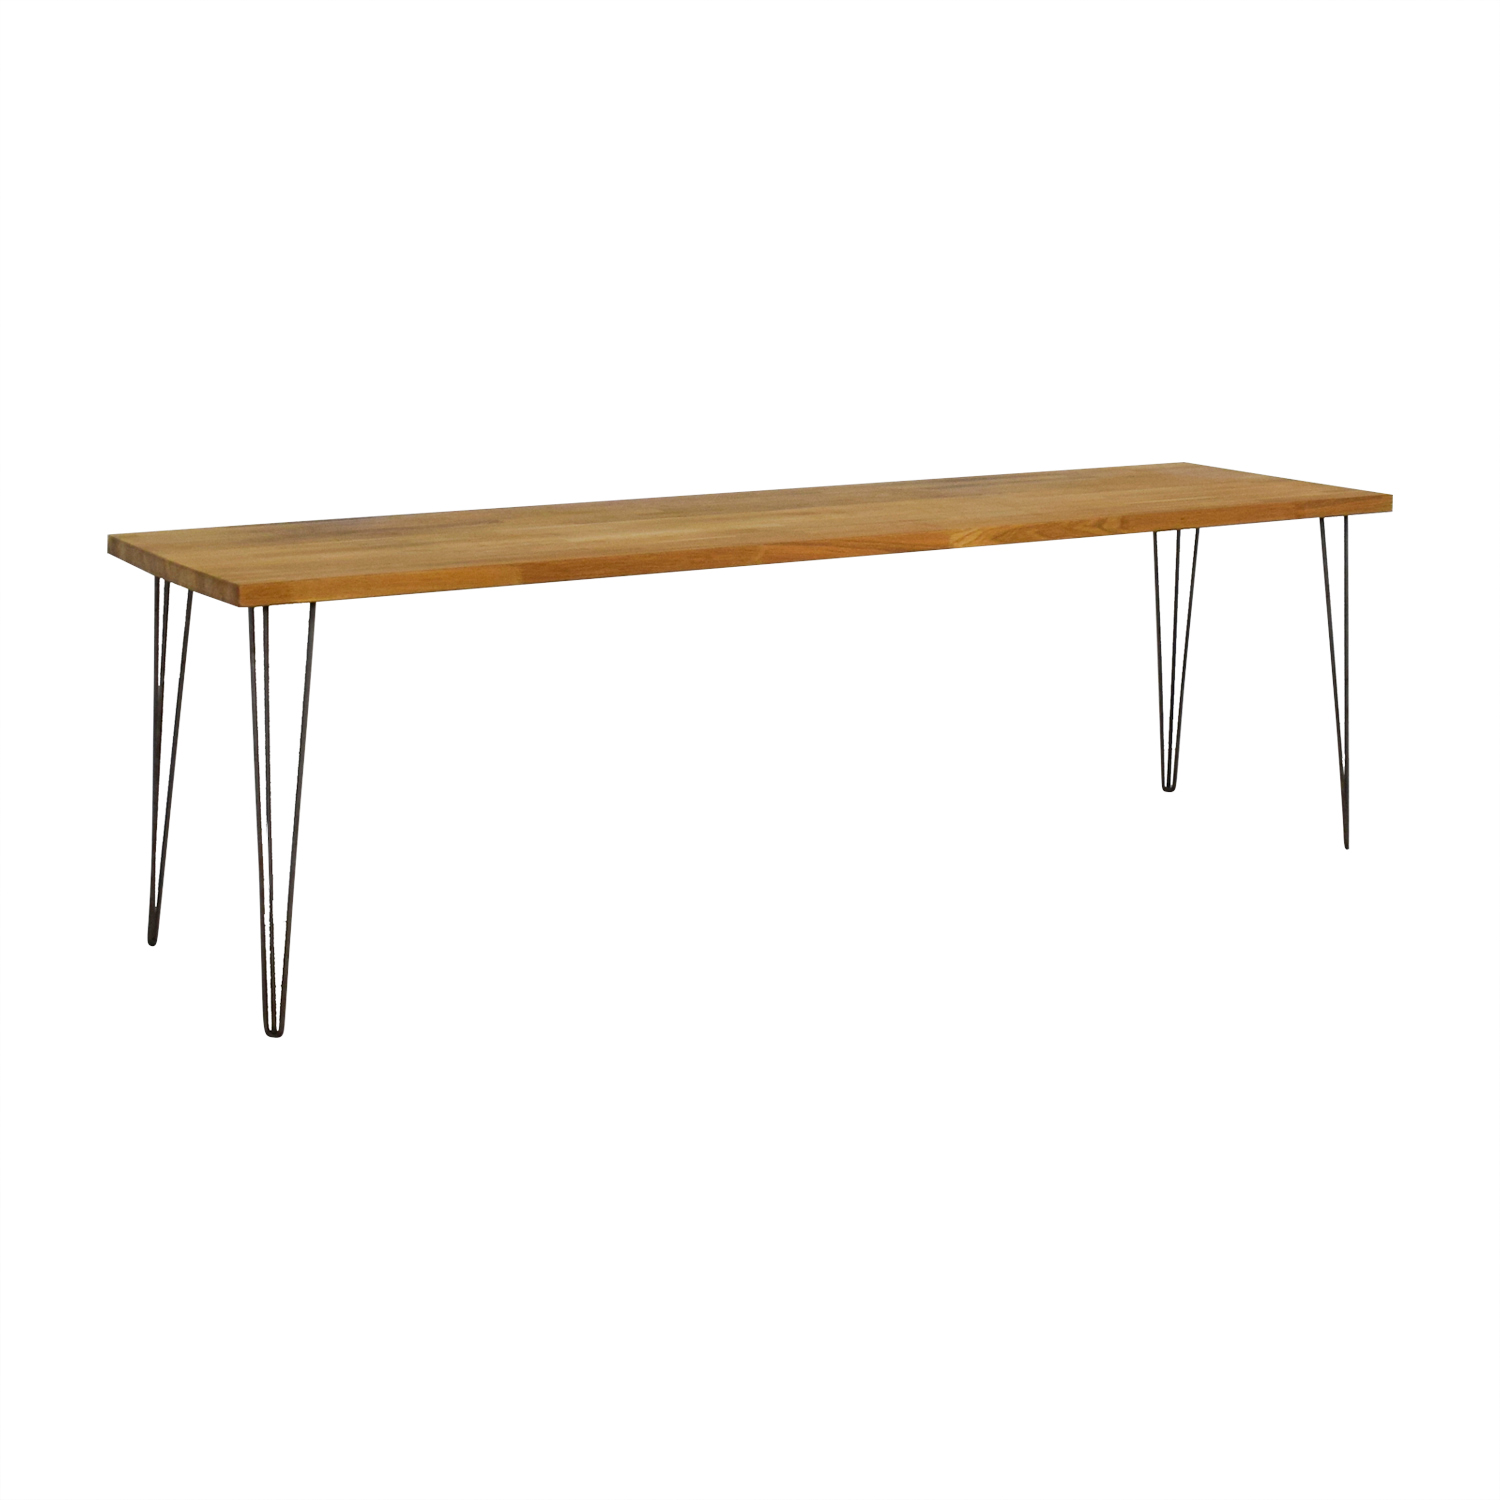 Custom Hazelnut Wood Table with Triangular Steel Legs